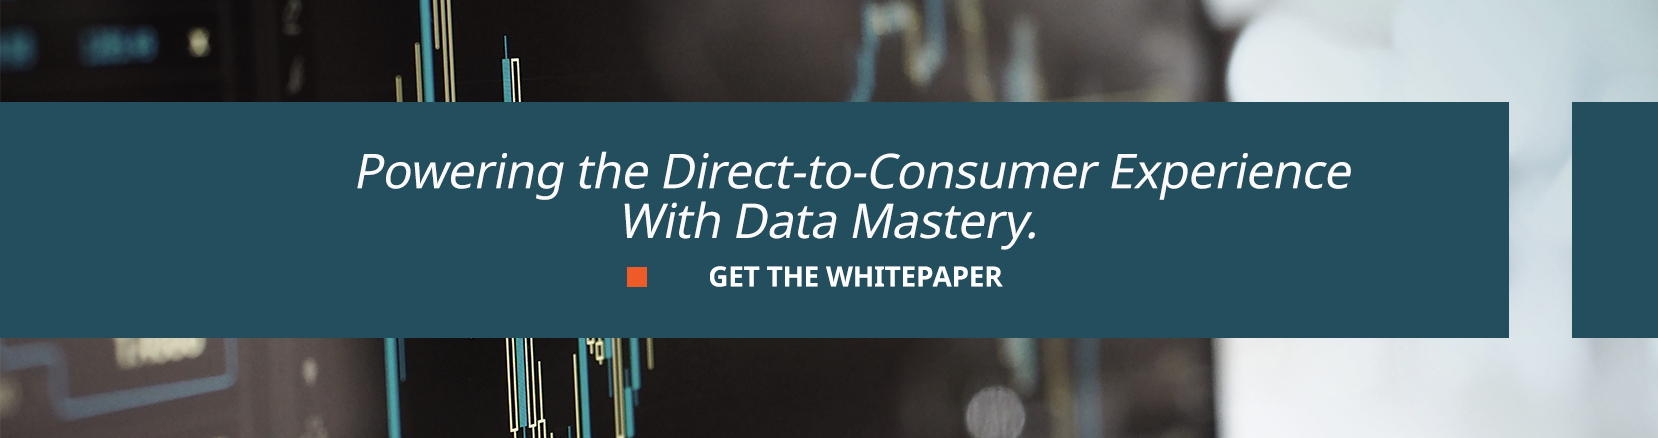 powering the direct-to-consumer experience with data mastery